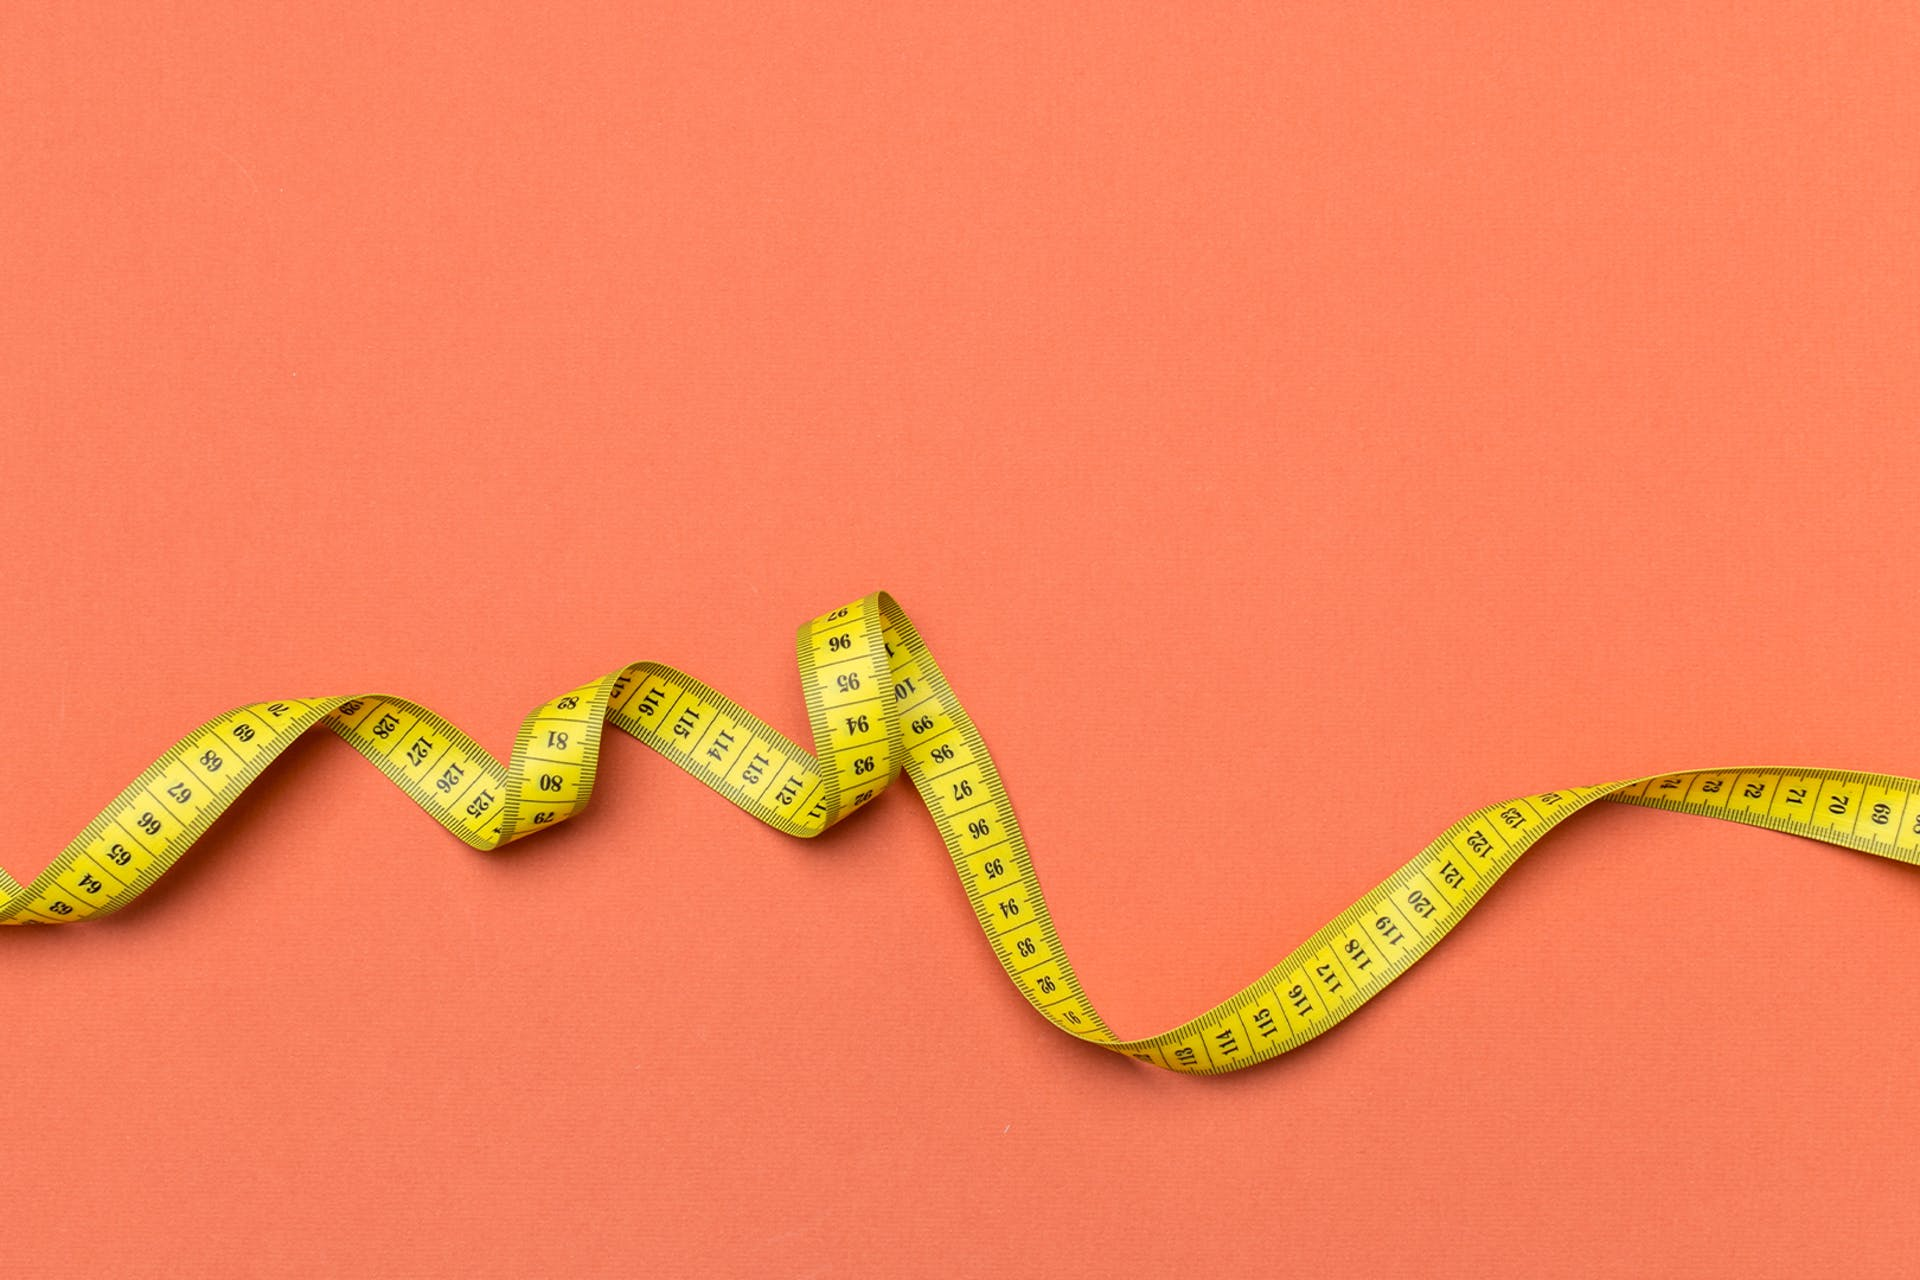 yellow tape measure against a coral pink background